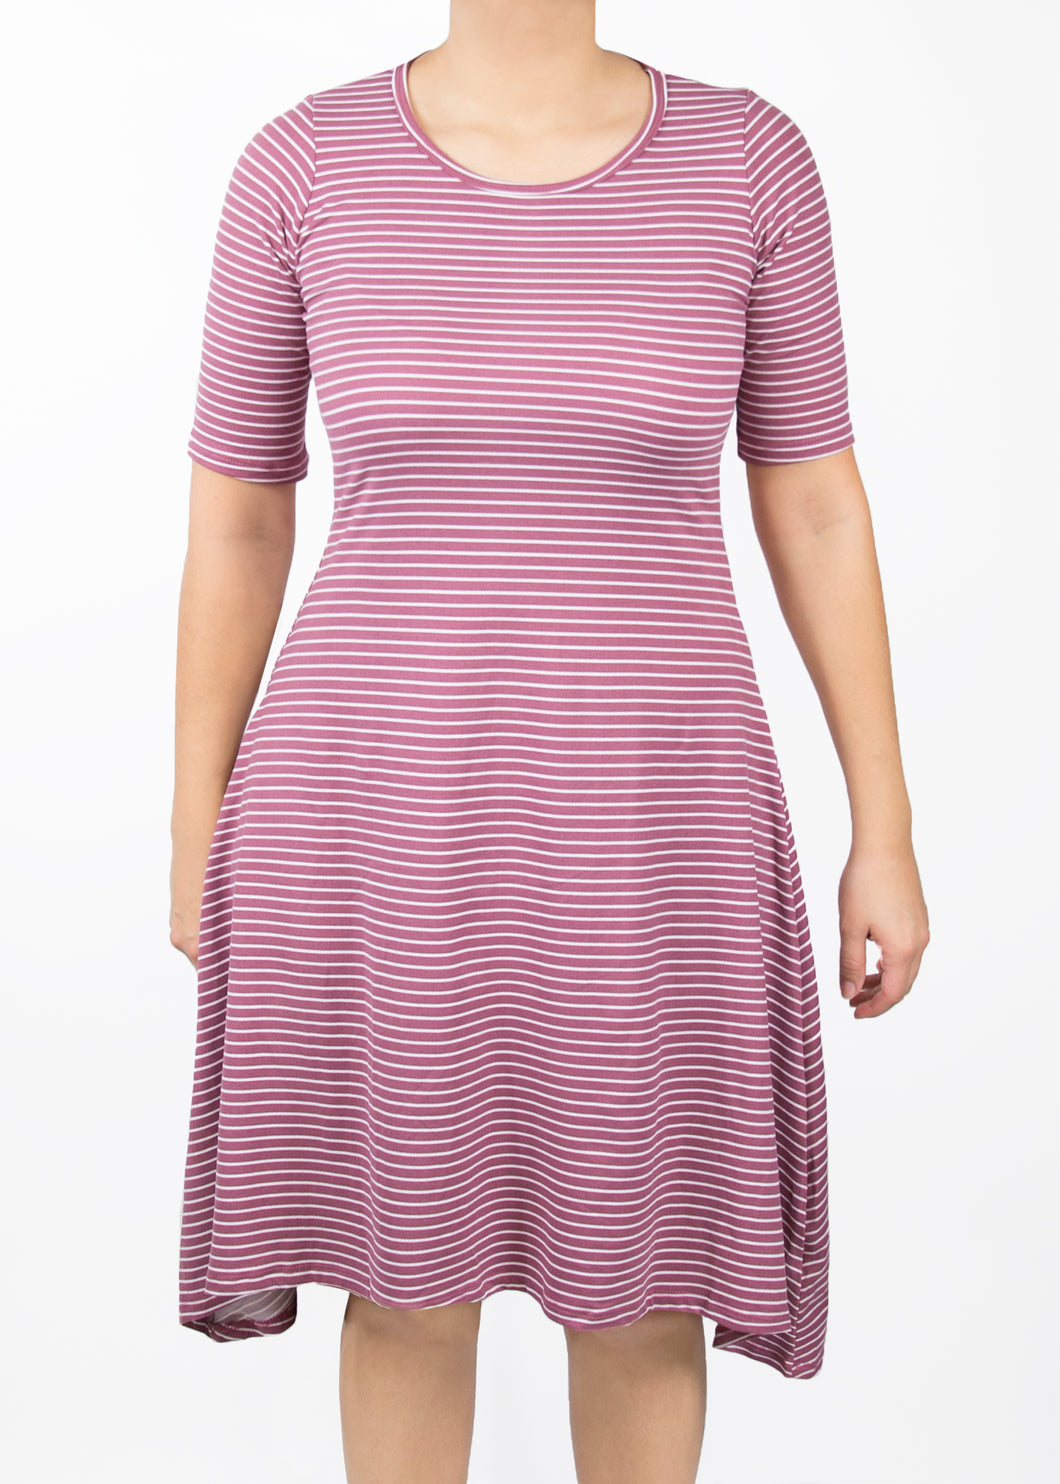 Poppy Dress - 1X - Pink & White Stripes